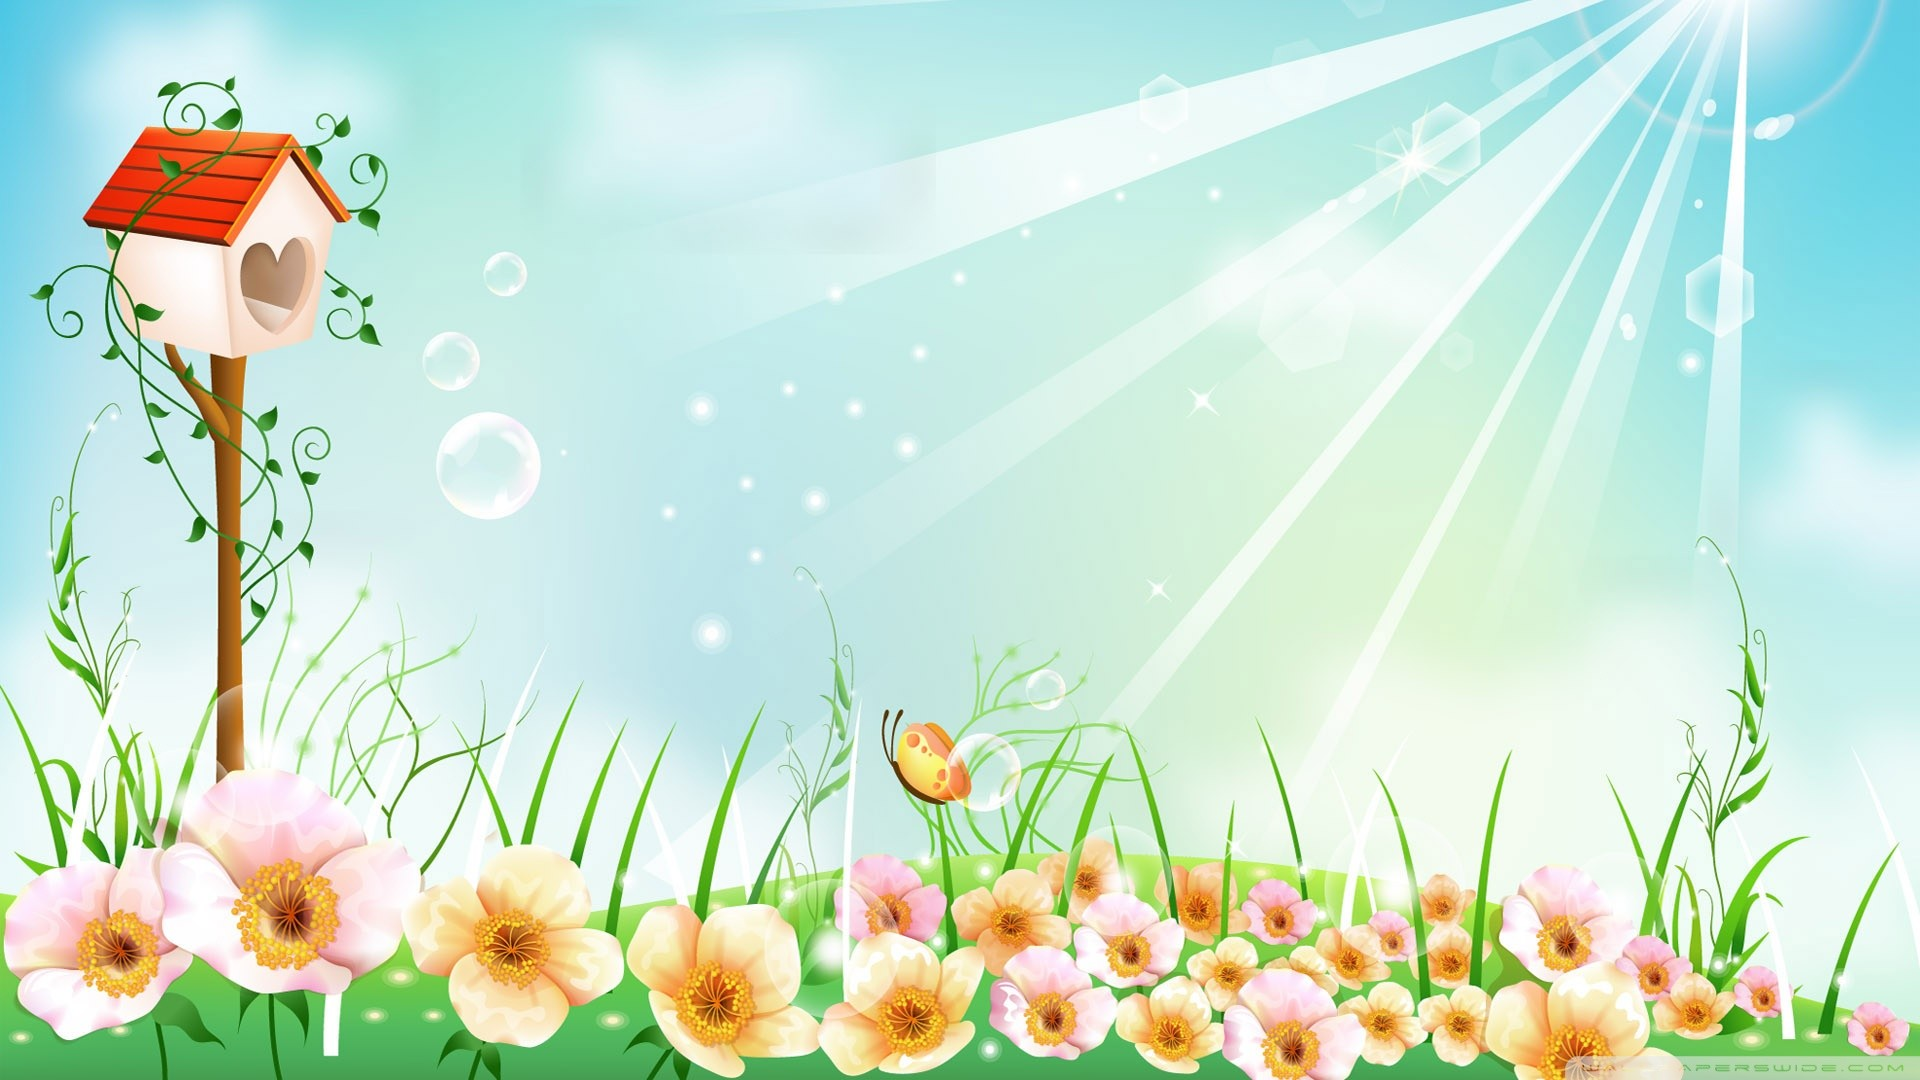 Easter Background Download Free Awesome Wallpapers For Desktop Mobile Laptop In Any